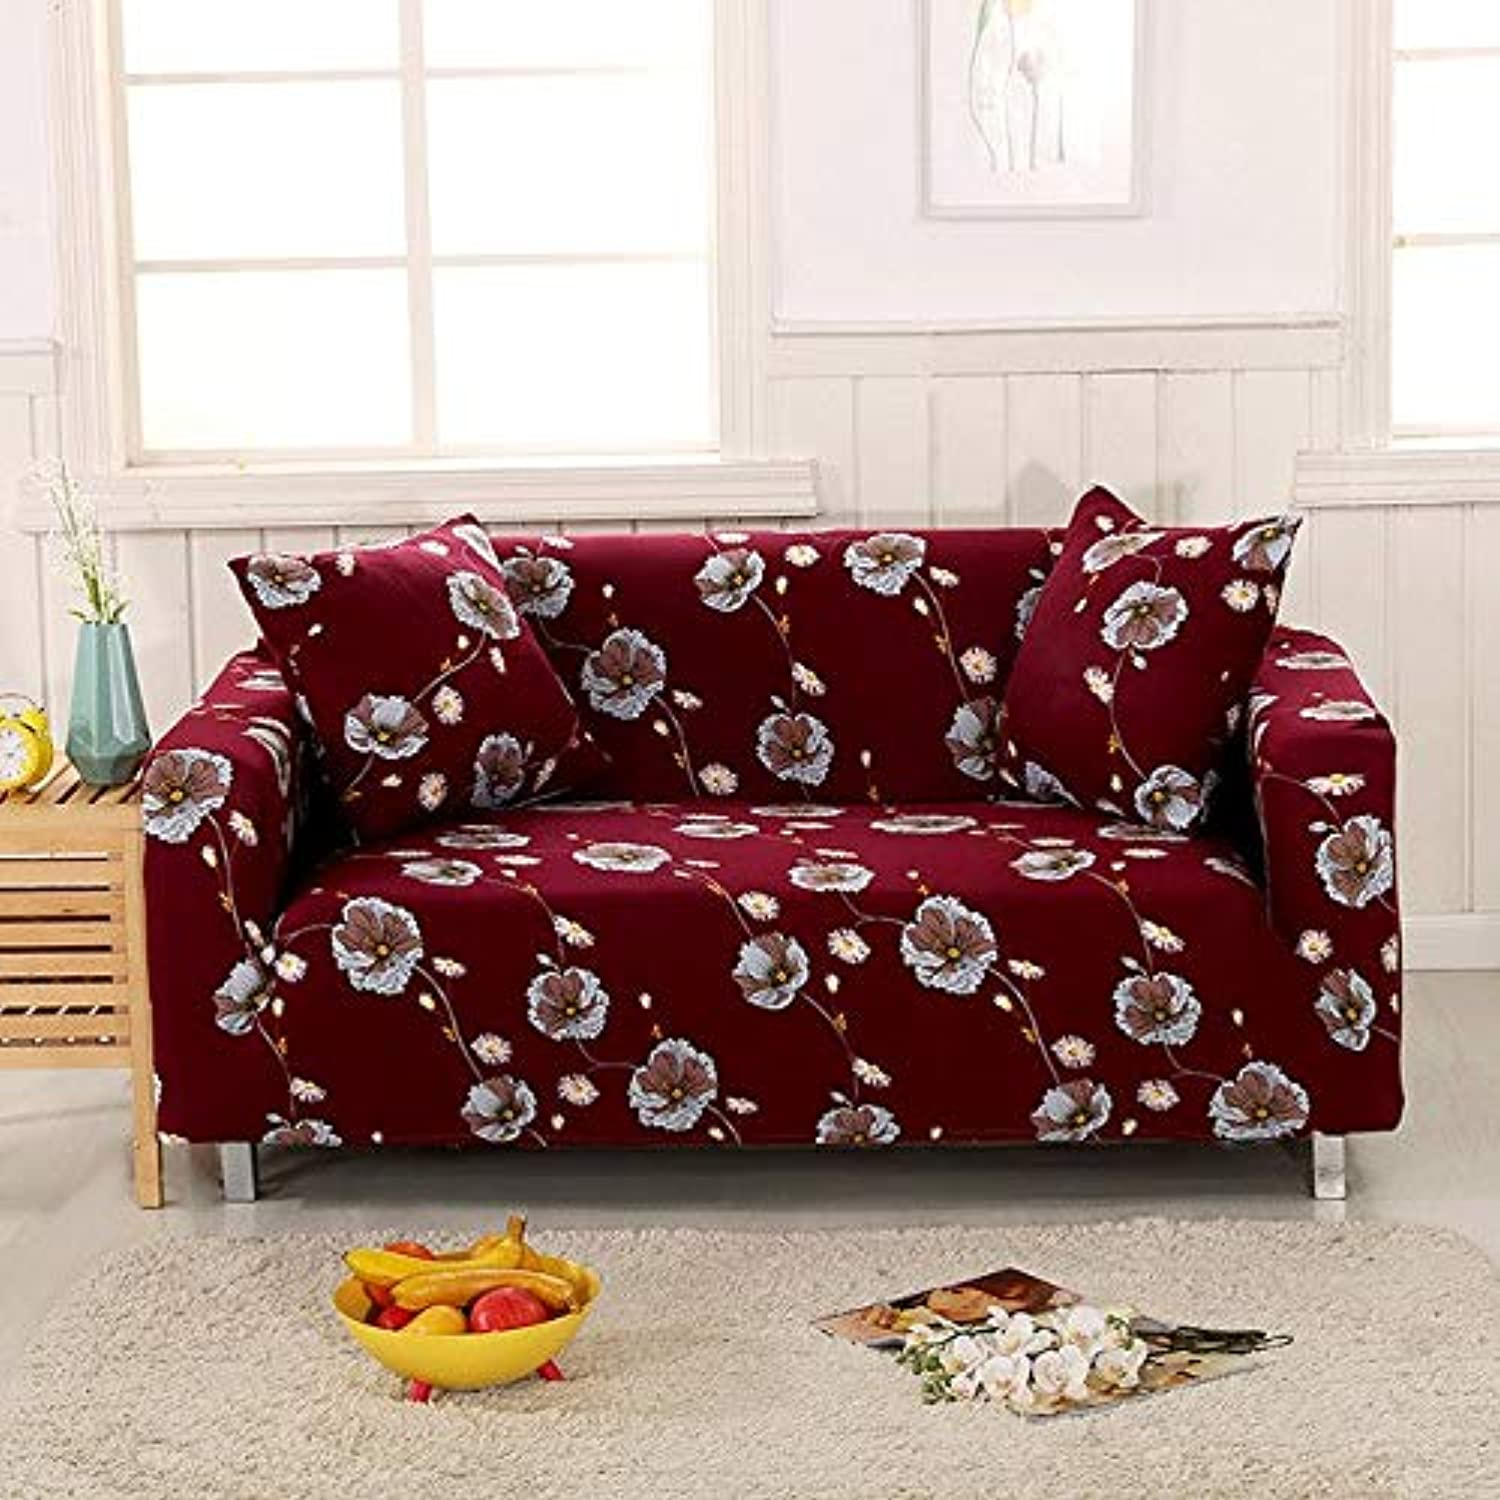 Sofa Slipcovers Tight wrap All-Inclusive Slip-Resistant sectional Elastic Full Sofa Cover S M L XL Size   20163329, S 90-140cm